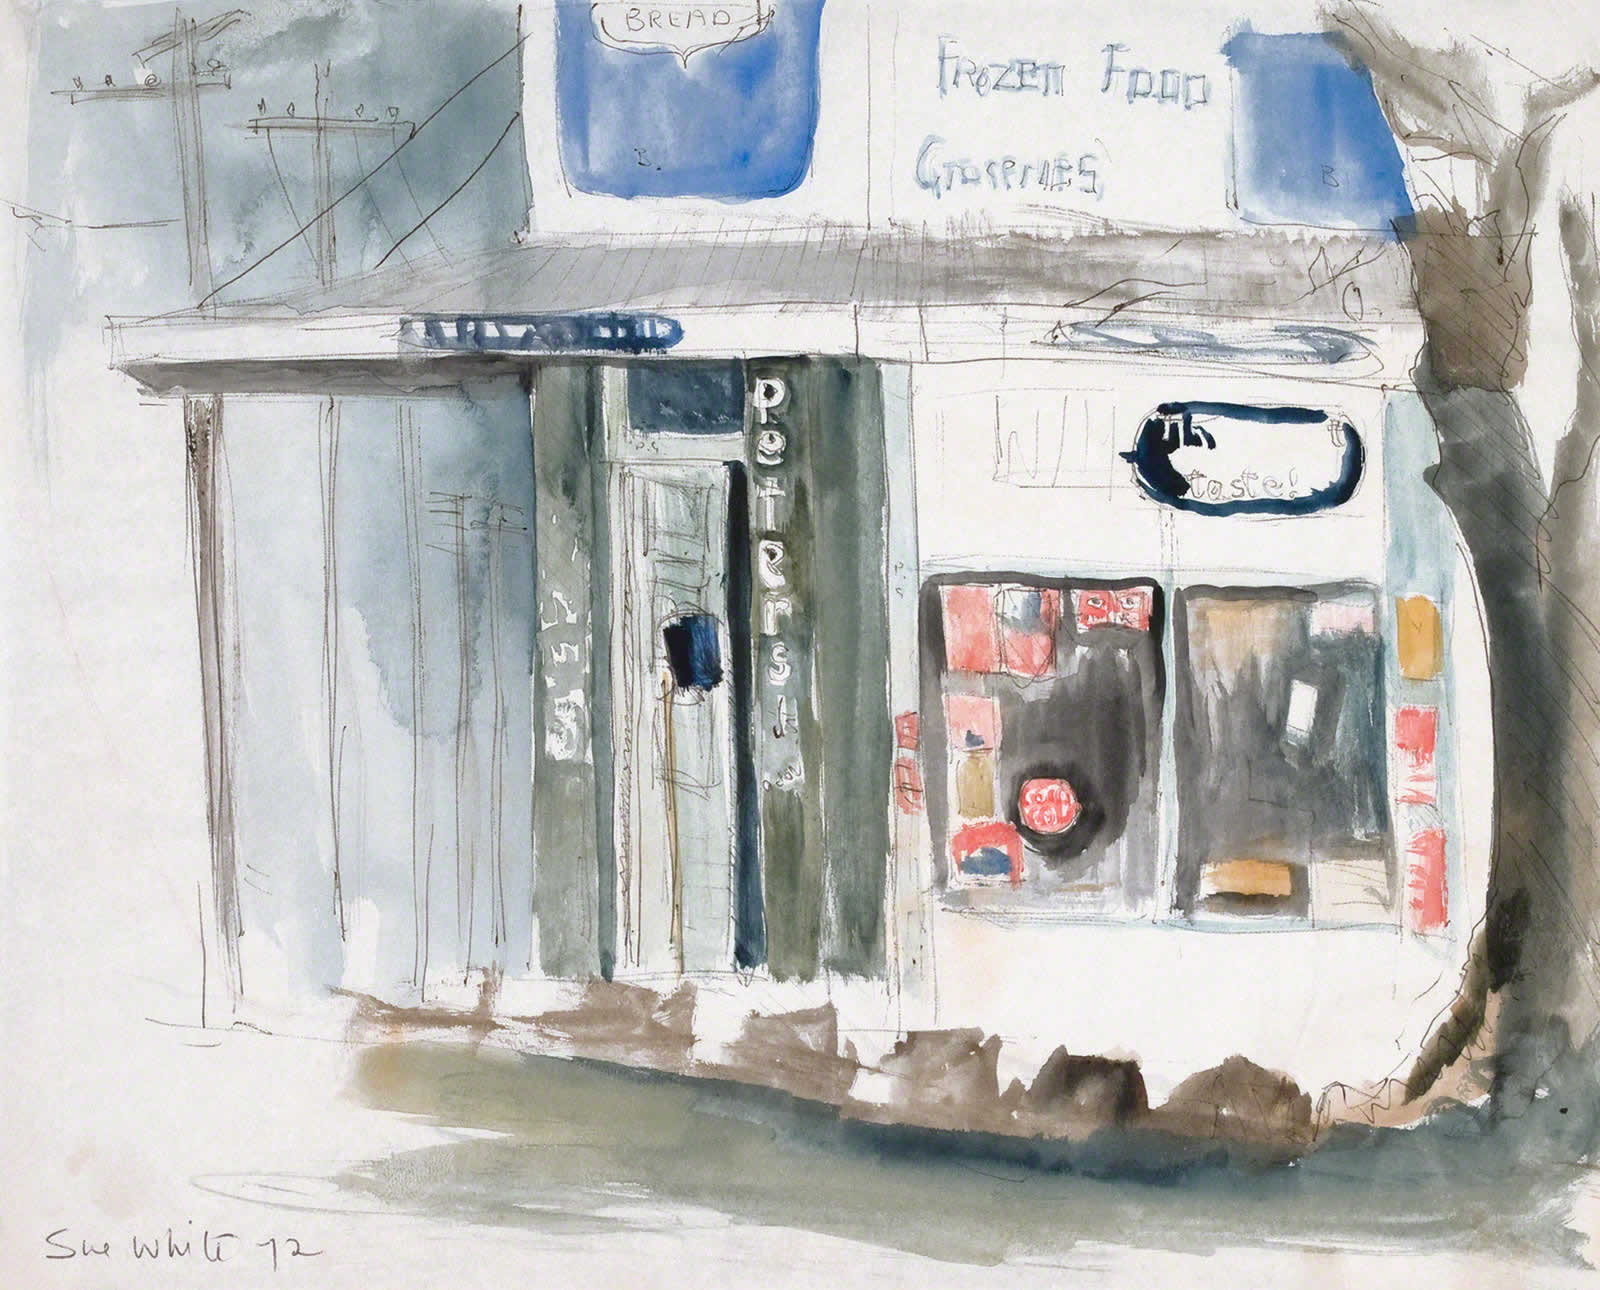 Sketch: Corner shop Annandale, Piper & View Sts - 'Groceries' by Susan Dorothea White